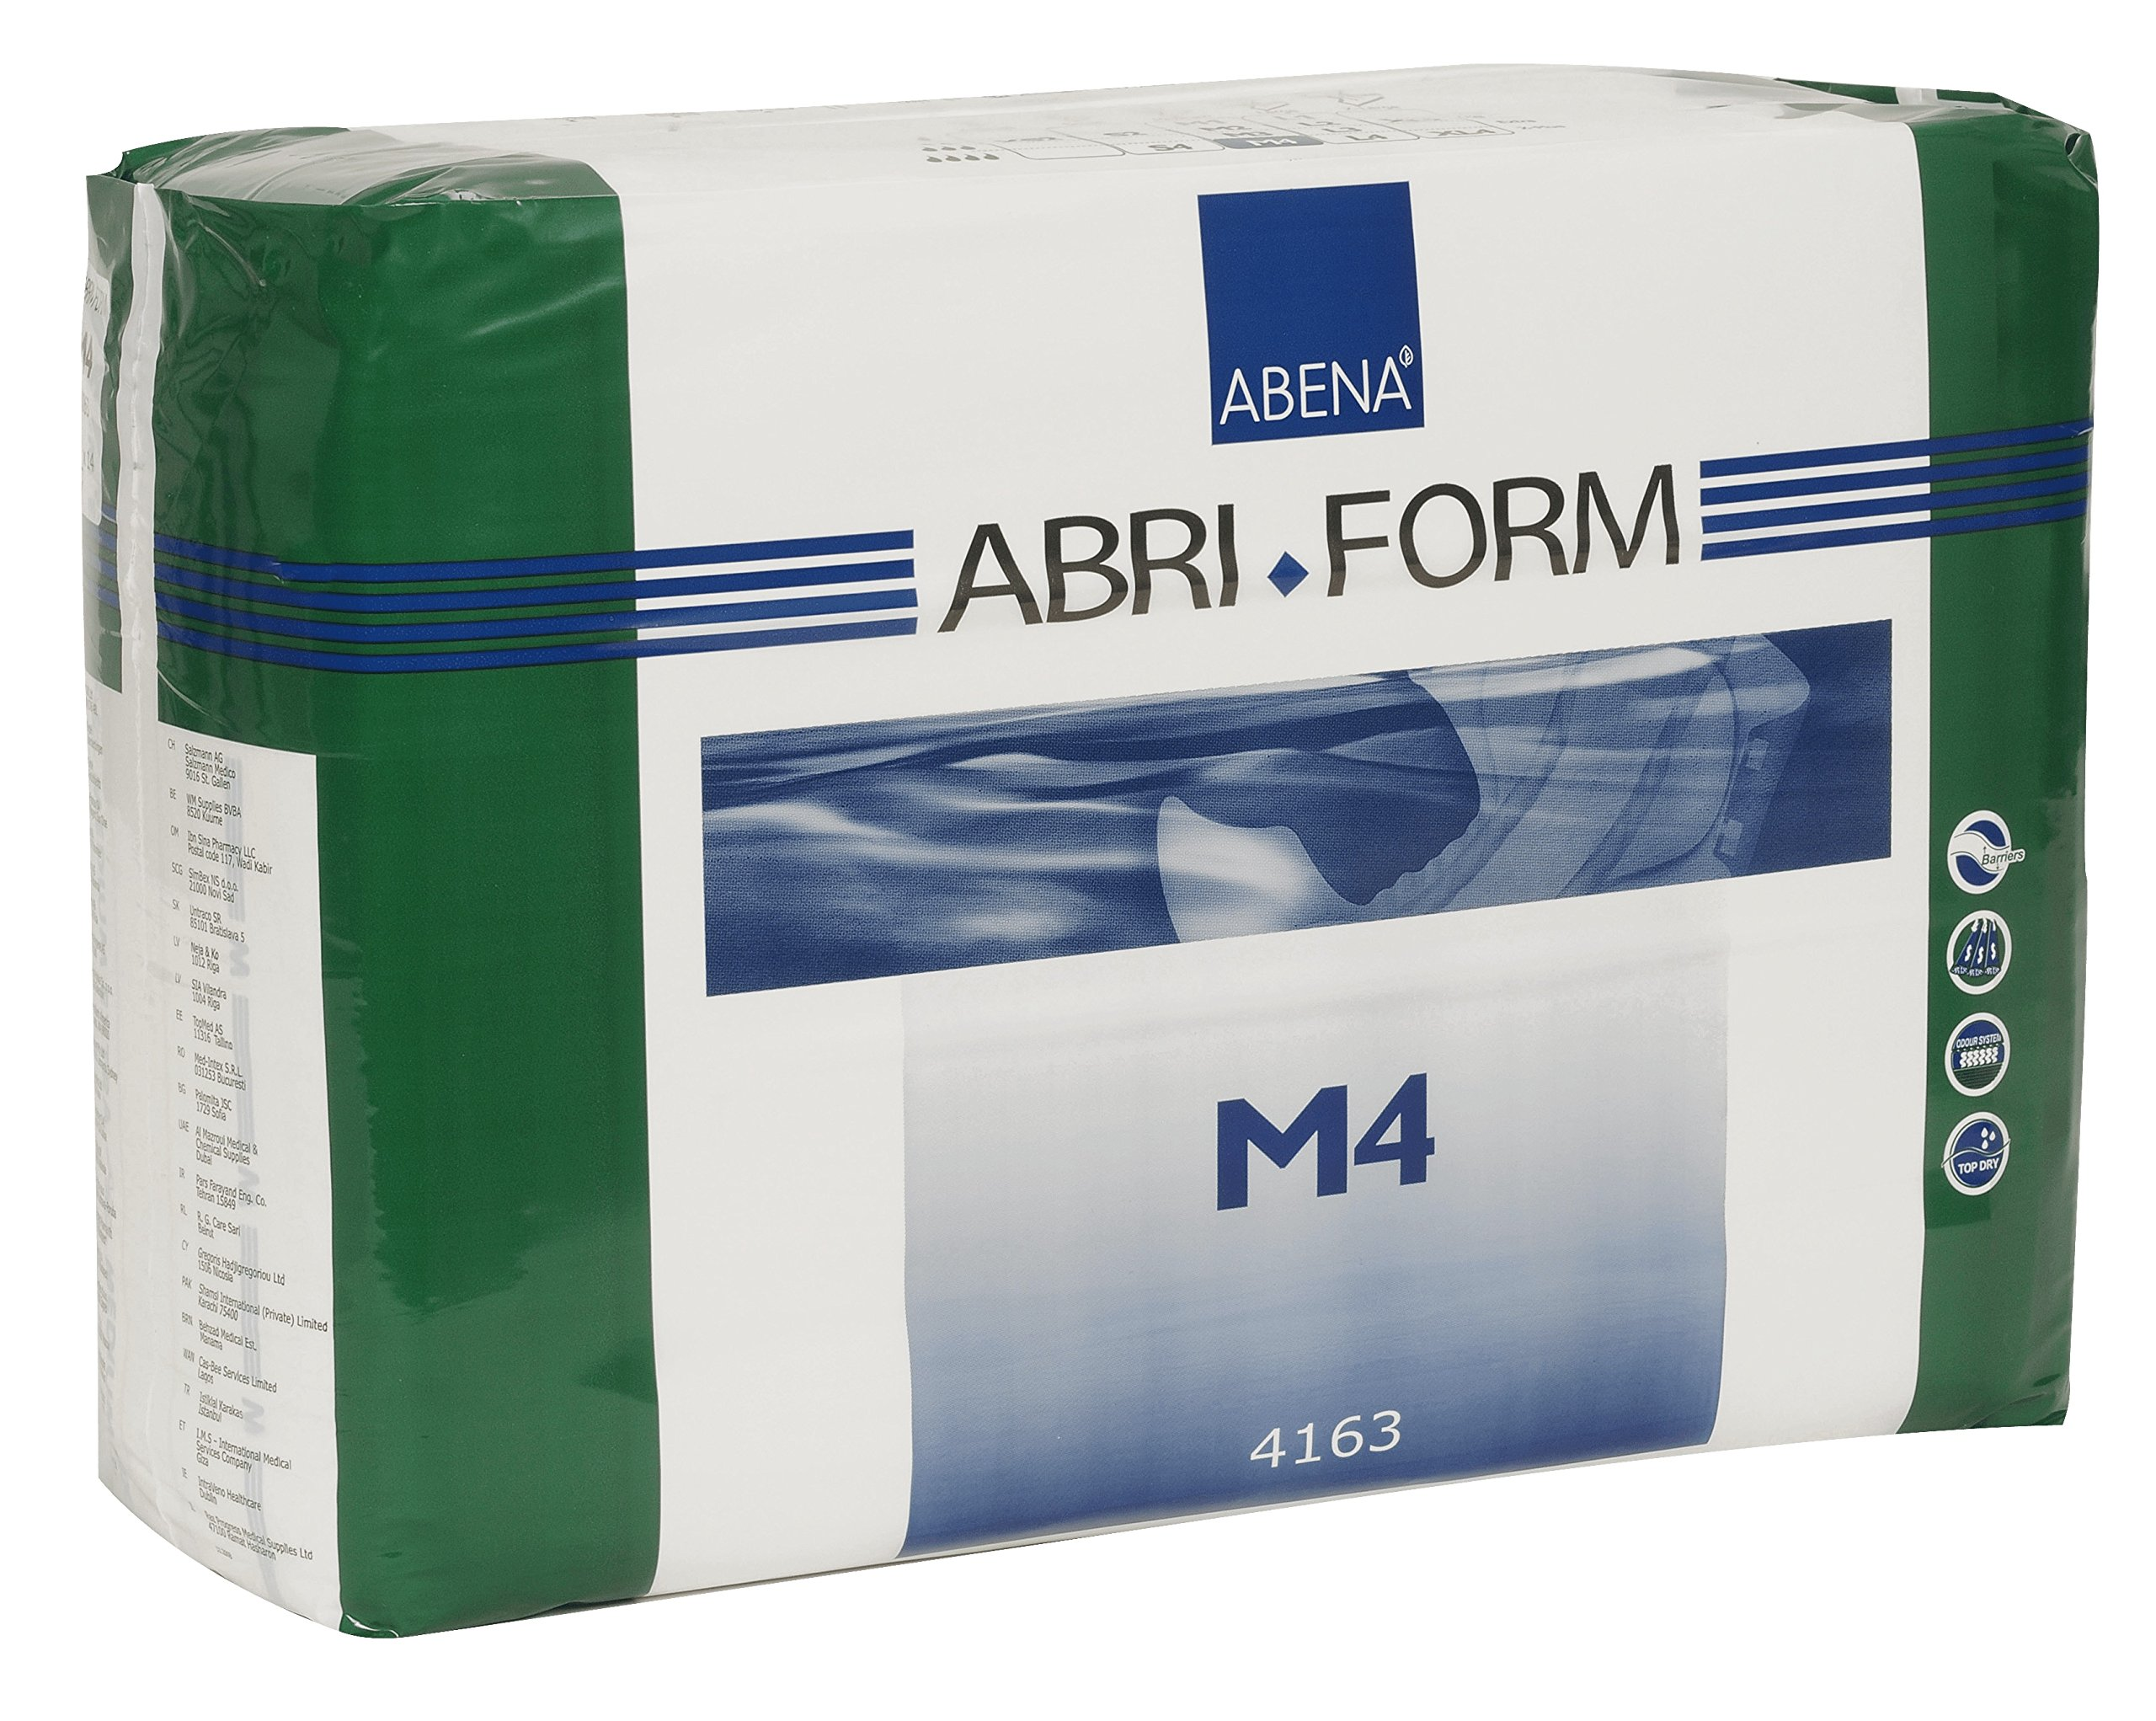 Abena Abri-Form Comfort Briefs, Medium, M4, 14 Count by Abena